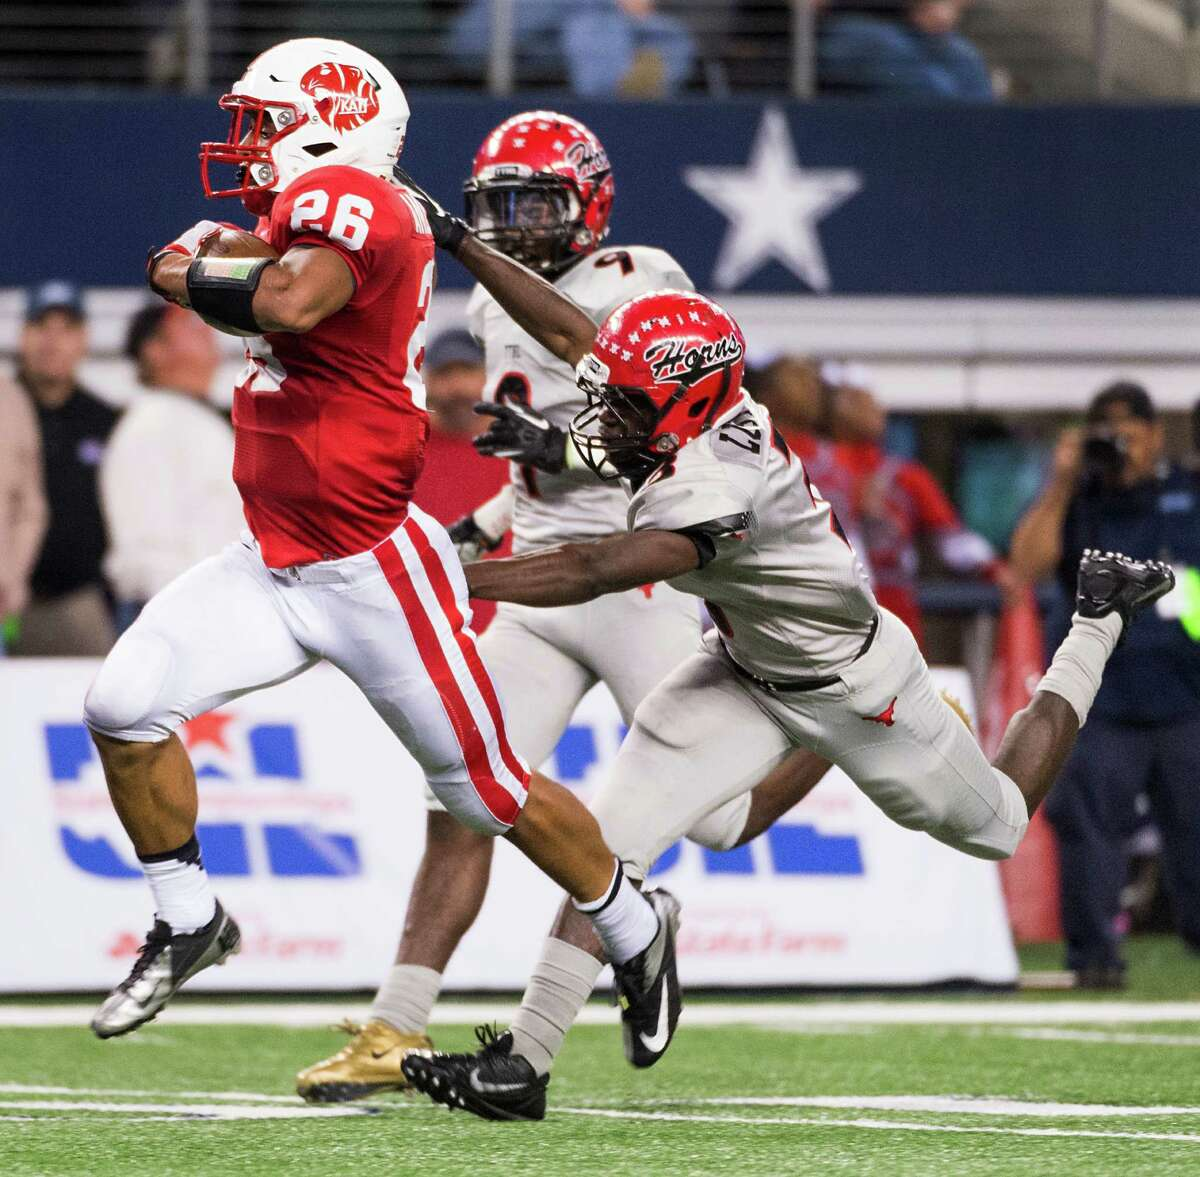 2. Katy and Cedar Hill meet for third time Saturday's Class 6A Division II title game will serve as a rubber match between Katy and Cedar Hill. Katy won the 2012 title game 35-24, and Cedar Hill won state last year 34-24.